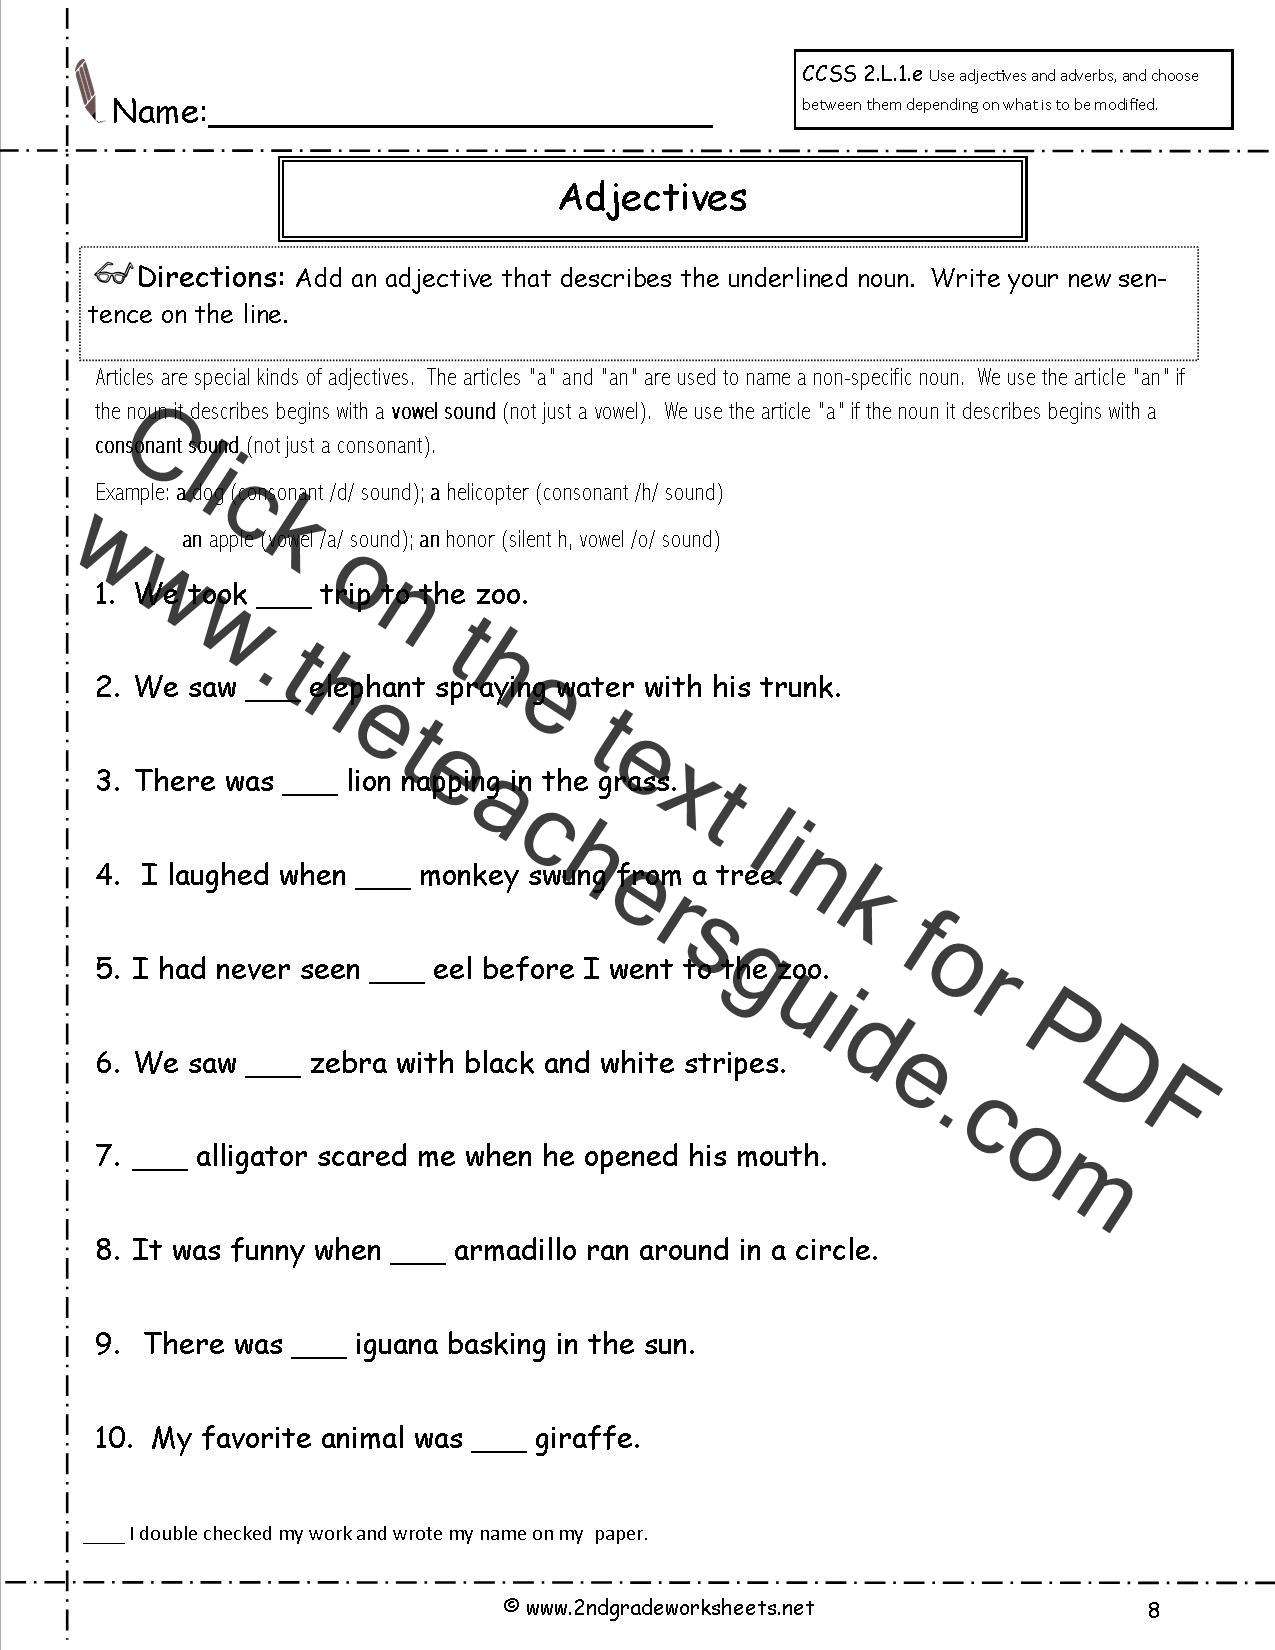 Printables Free Second Grade Language Arts Worksheets free languagegrammar worksheets and printouts adjectives worksheets